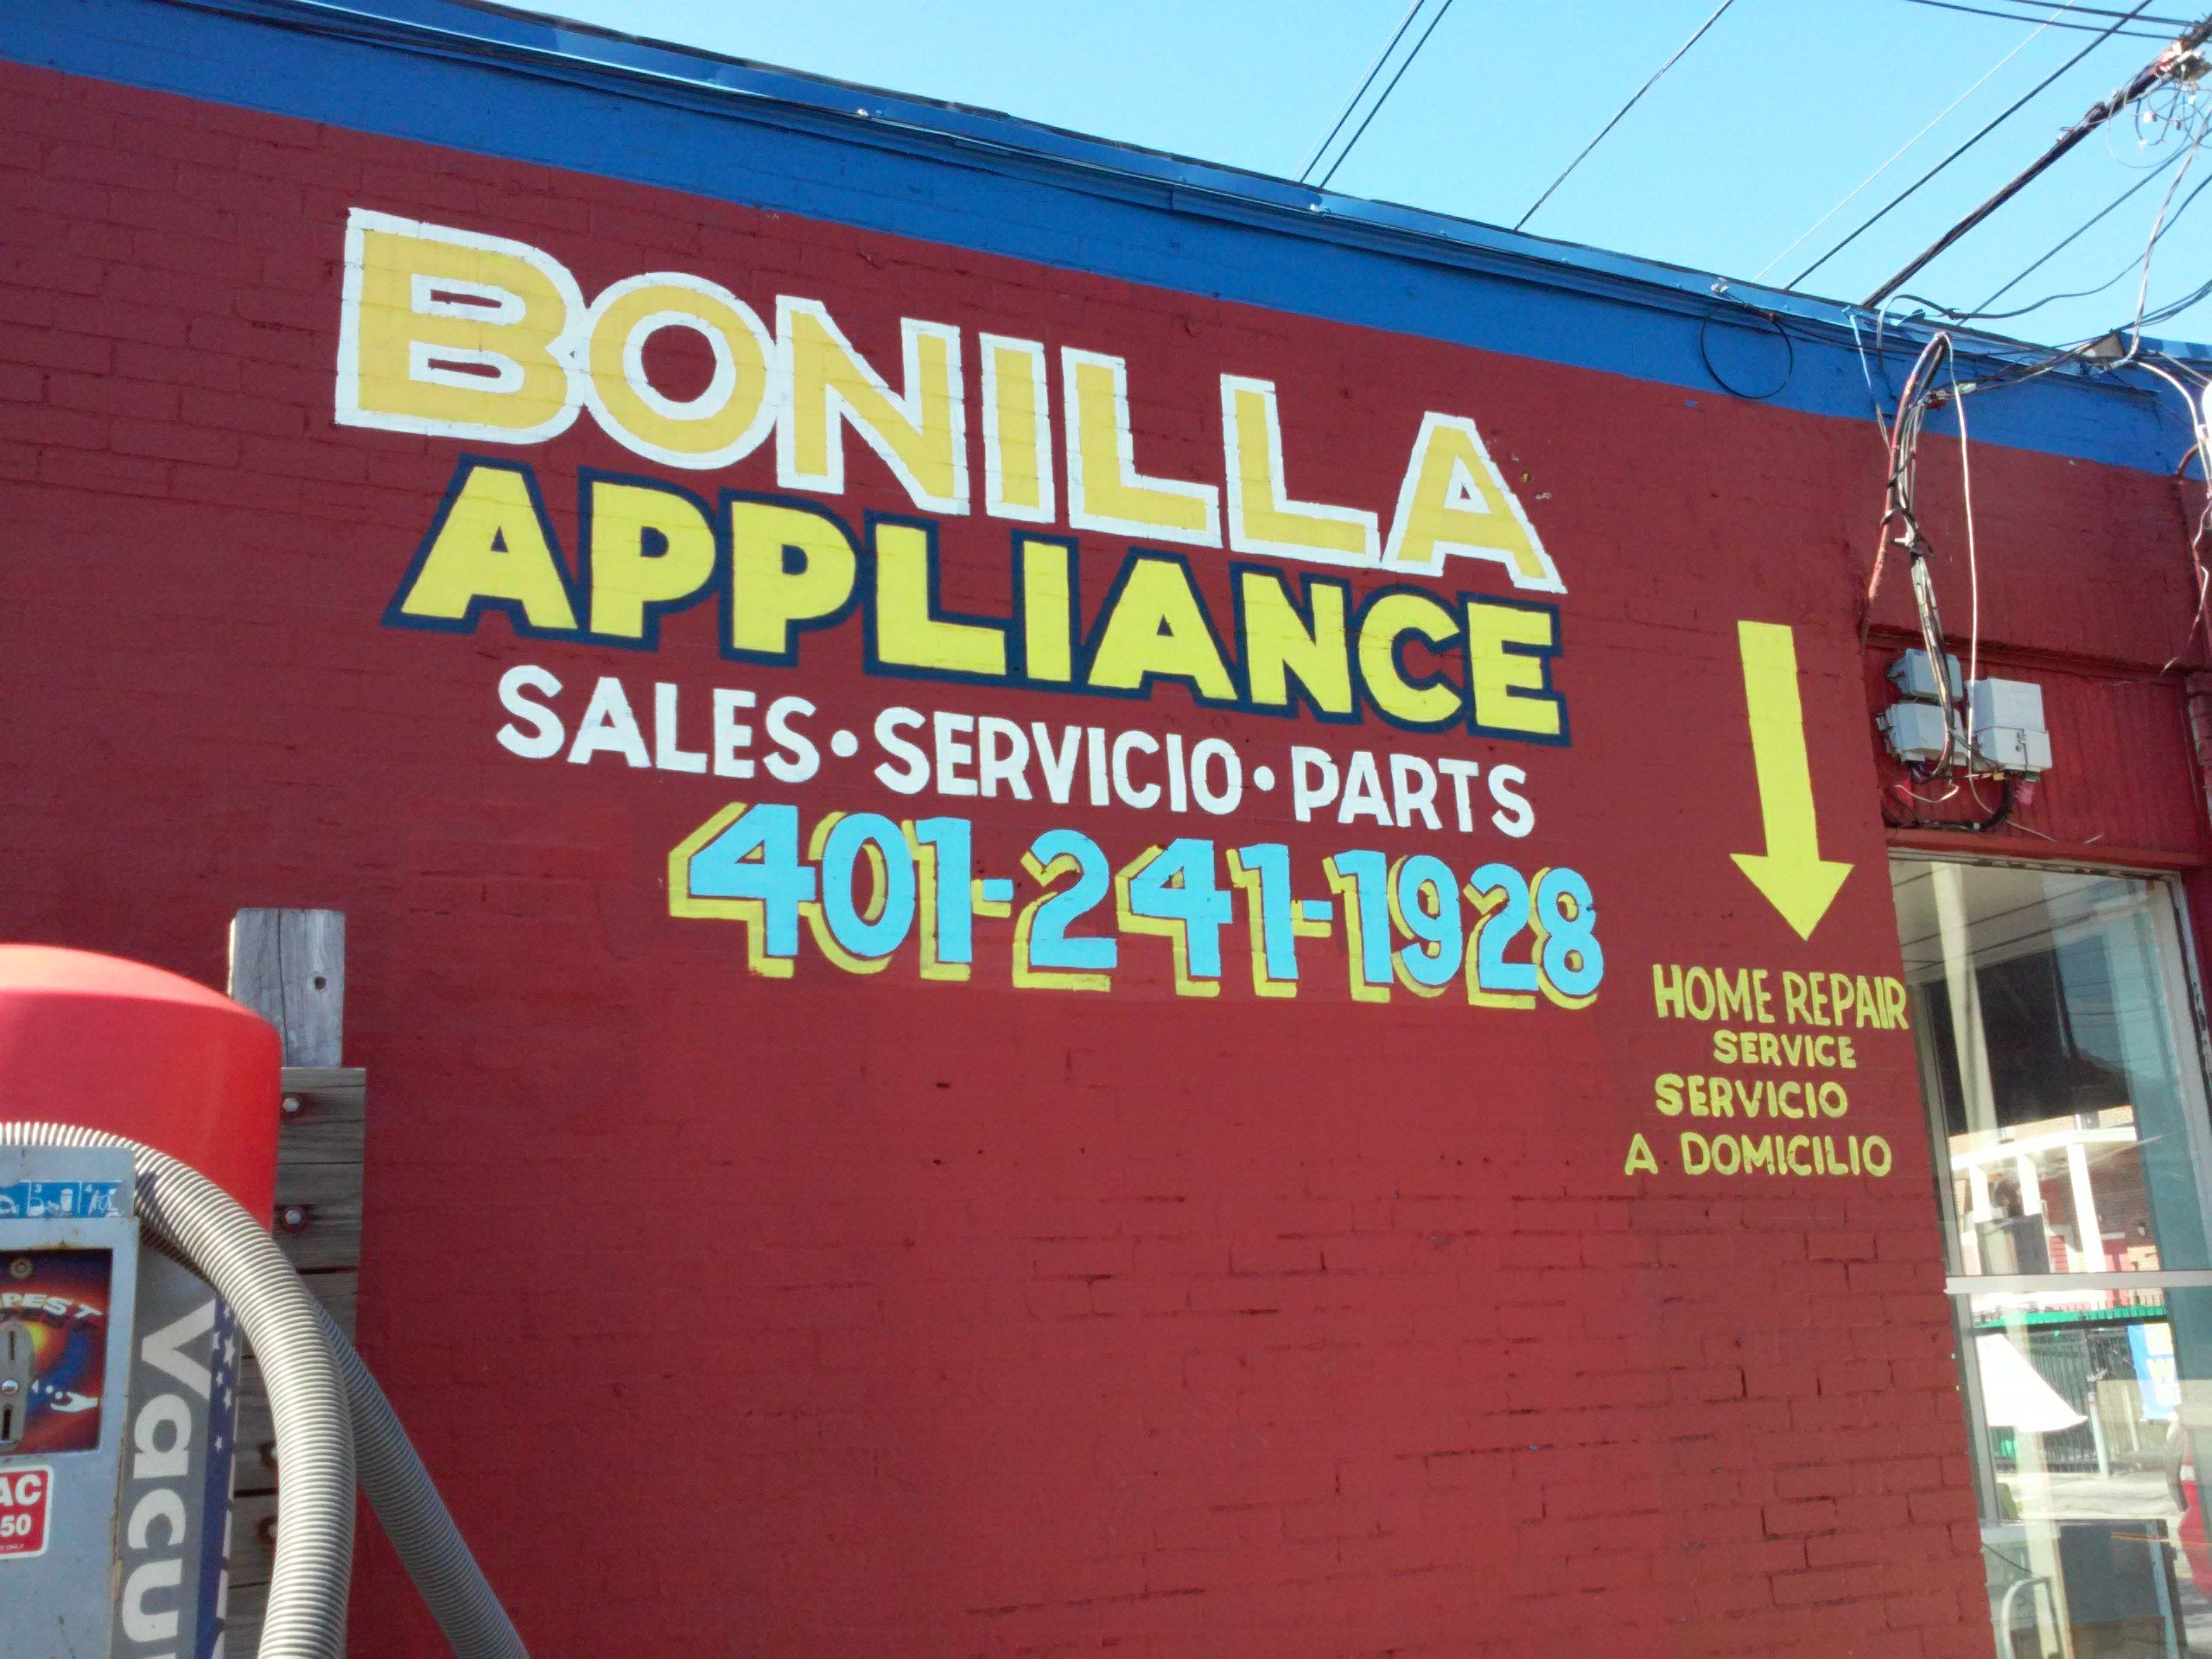 Bonilla Appliance